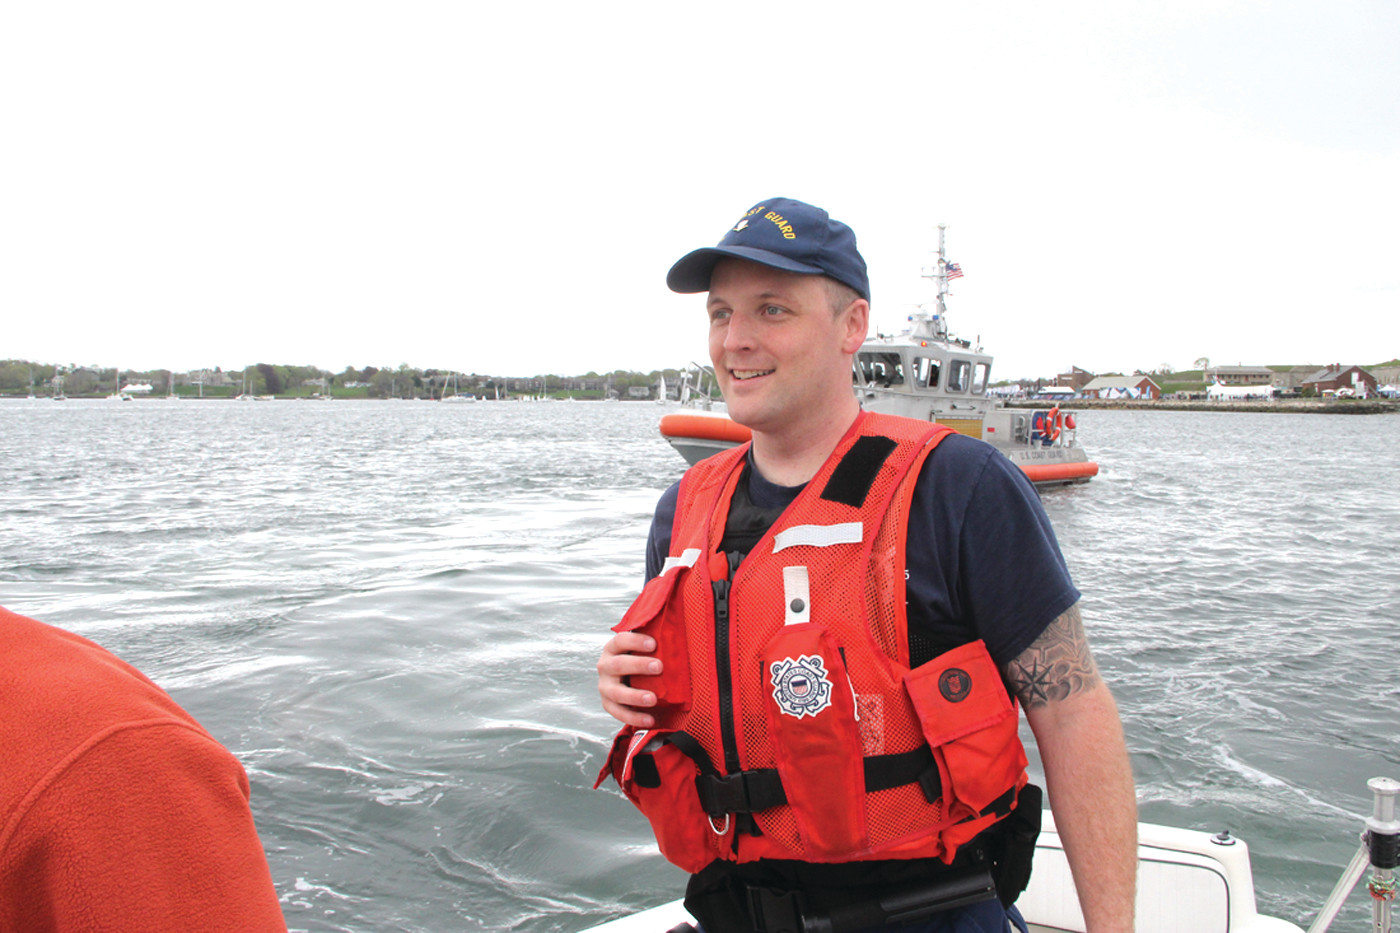 INSPECTION TEAM: Cranston resident Andrew Johnson, a member of the Coast Guard, helped conduct the inspection.